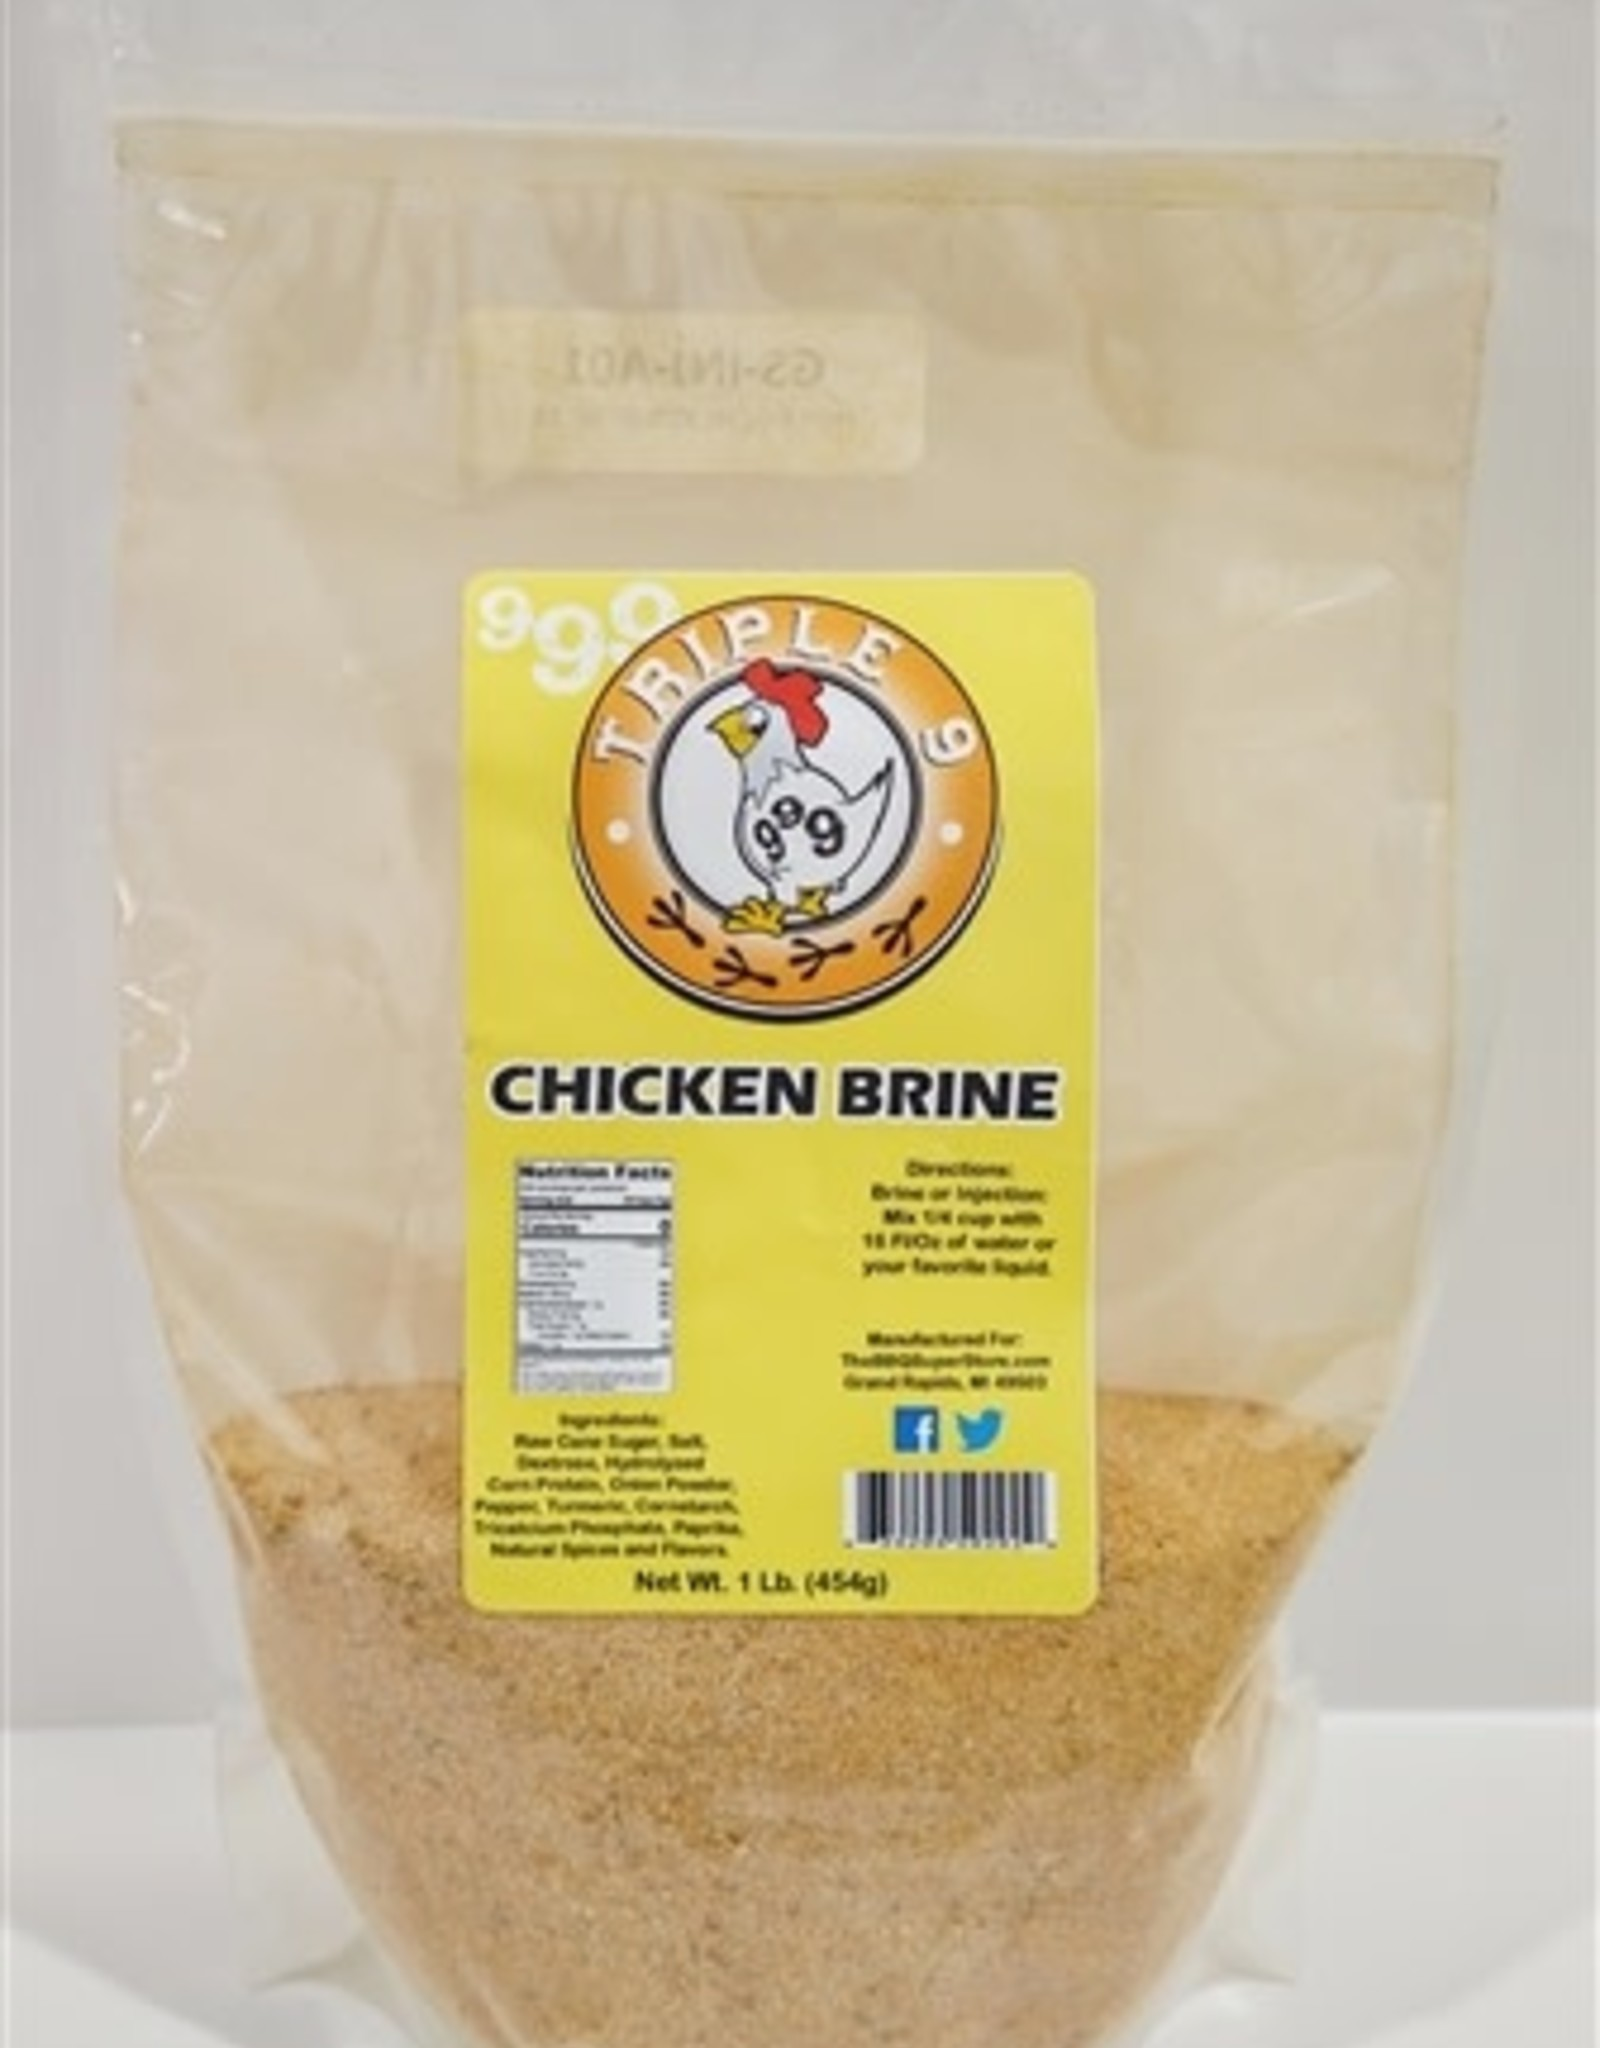 BBQ Superstore Triple 9 Chicken Brine